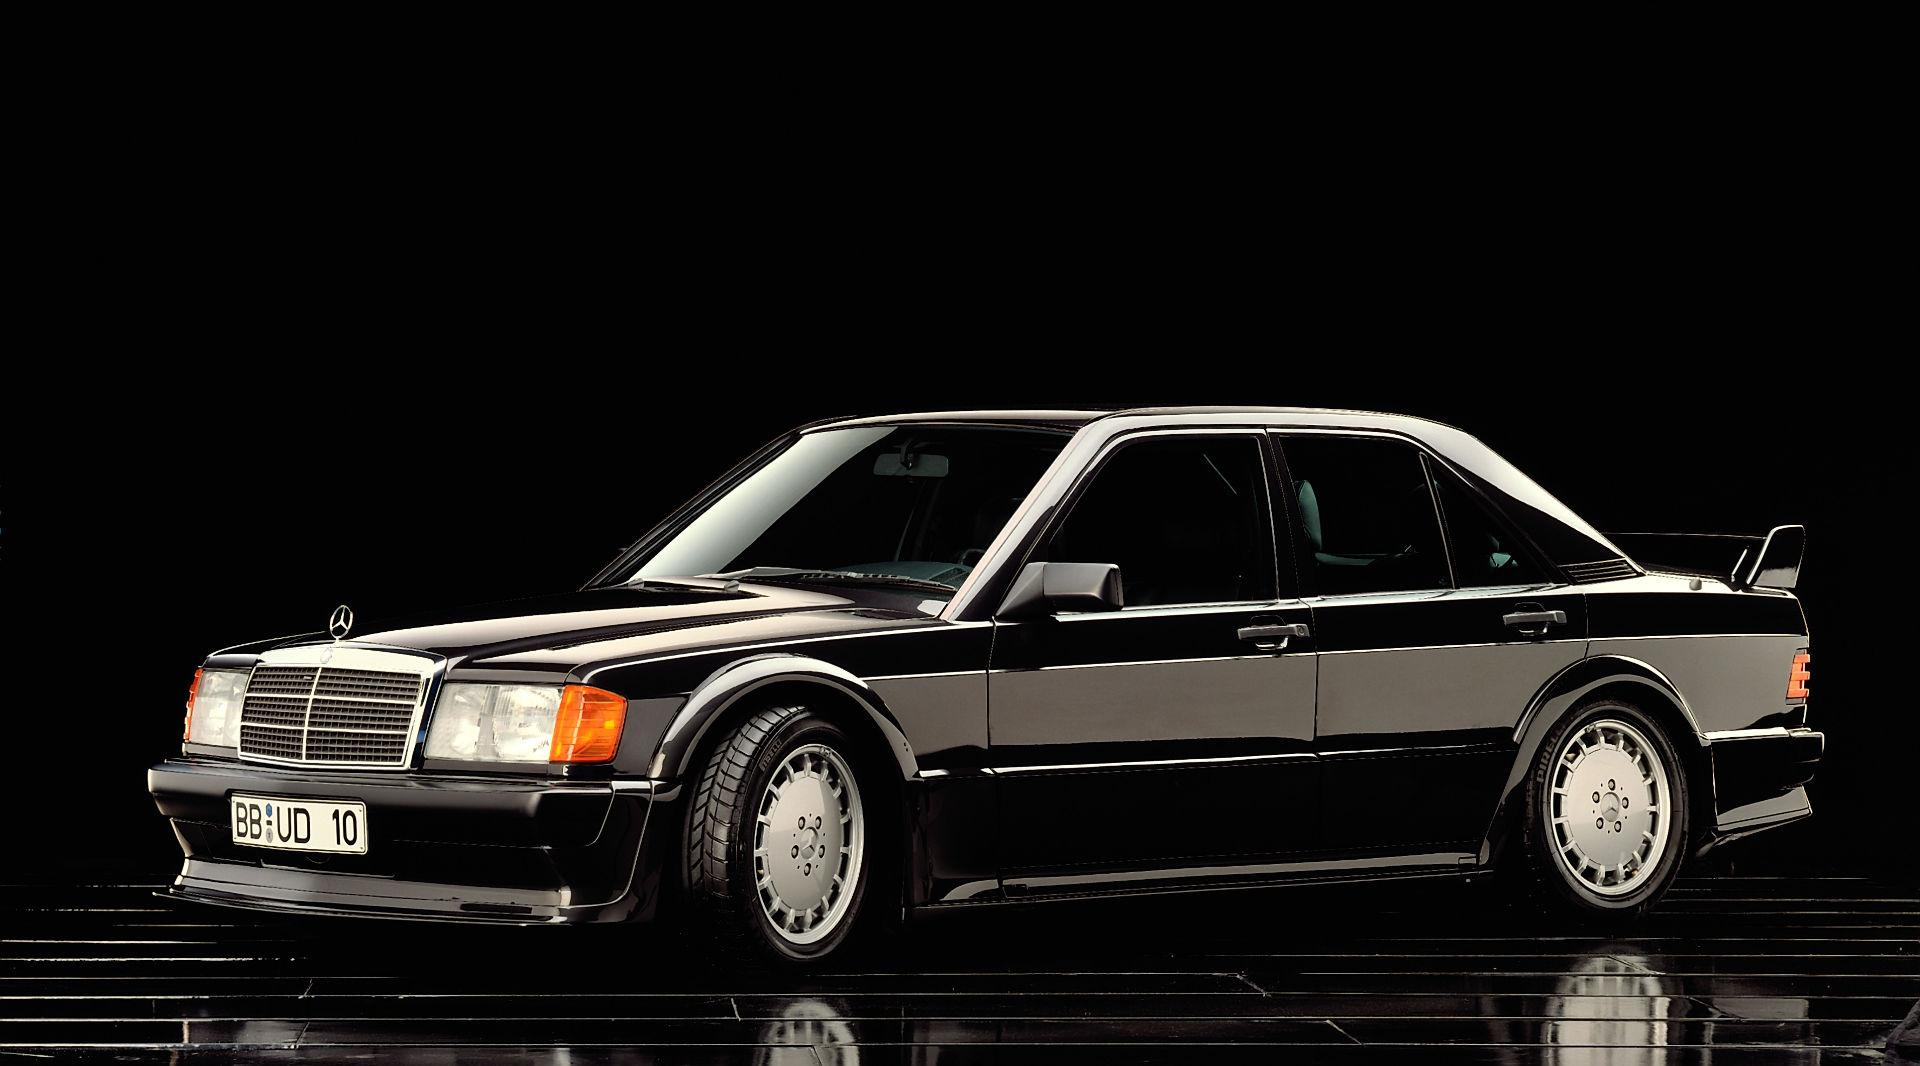 Mercedes-Benz 190 E 2.5 16V Evolution